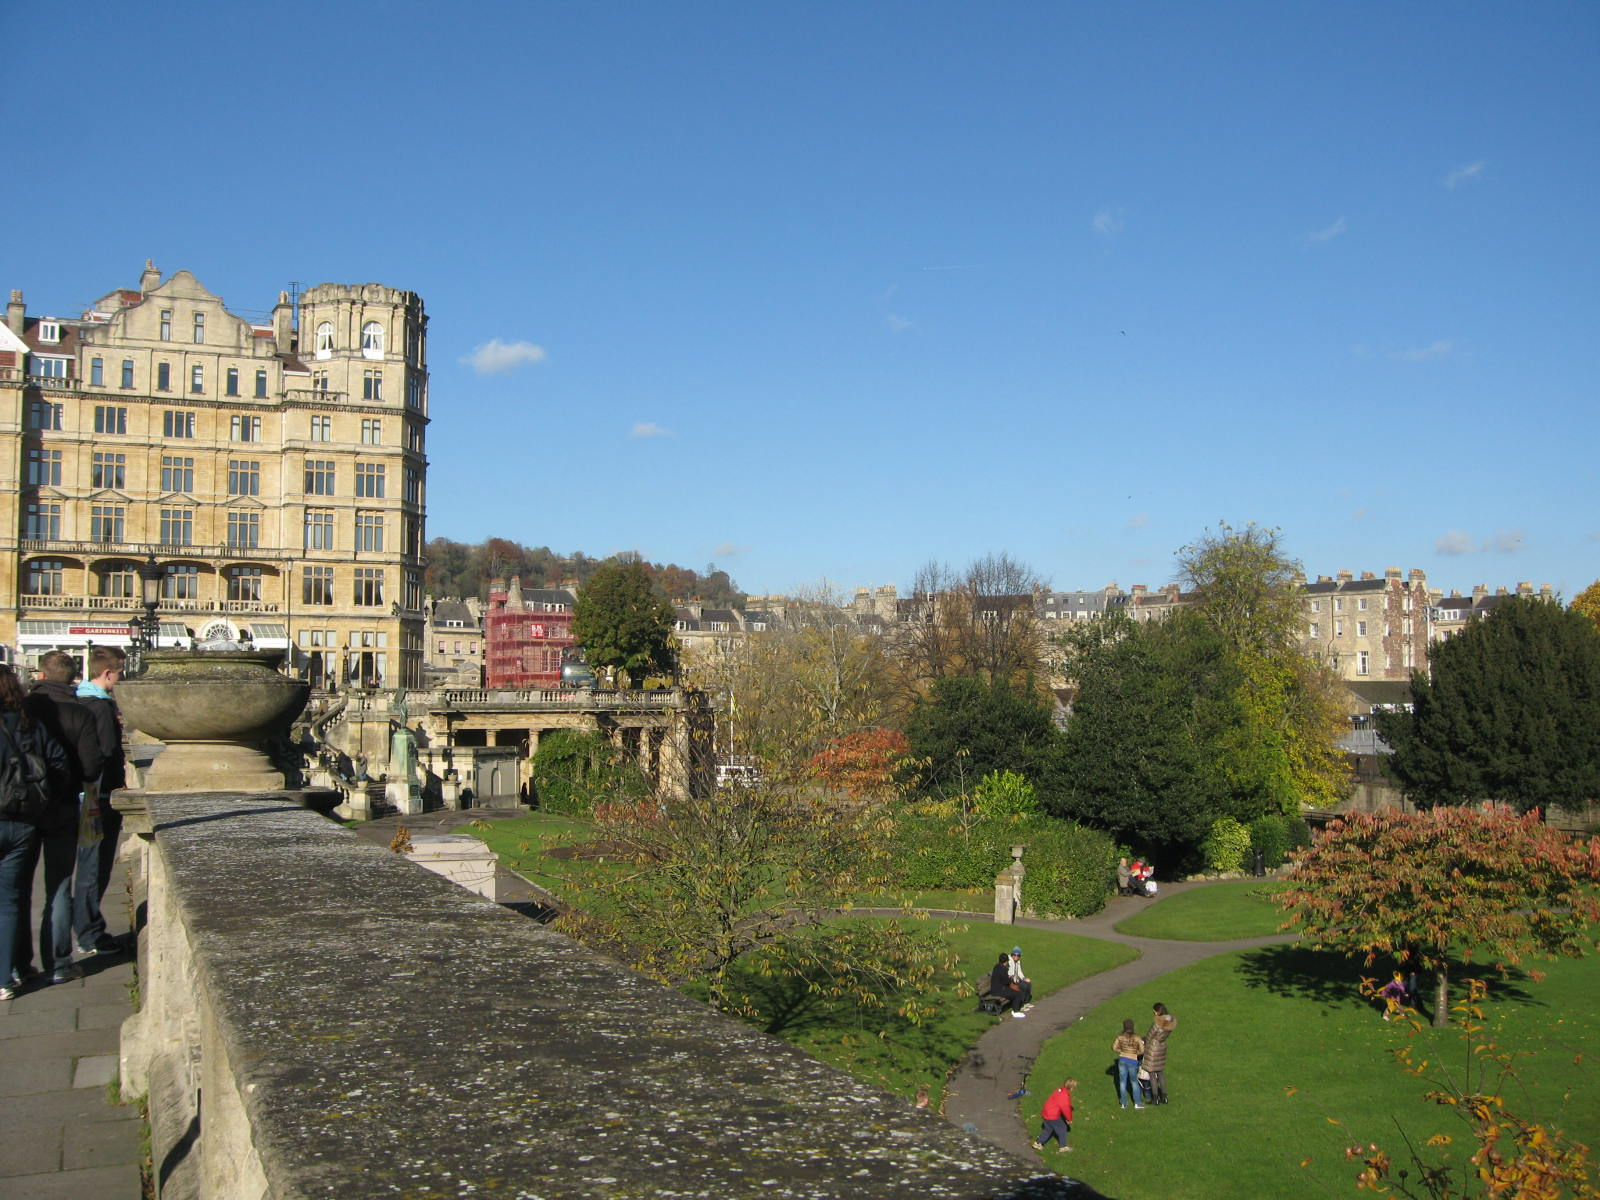 The beautiful city of Bath. Photo by me.